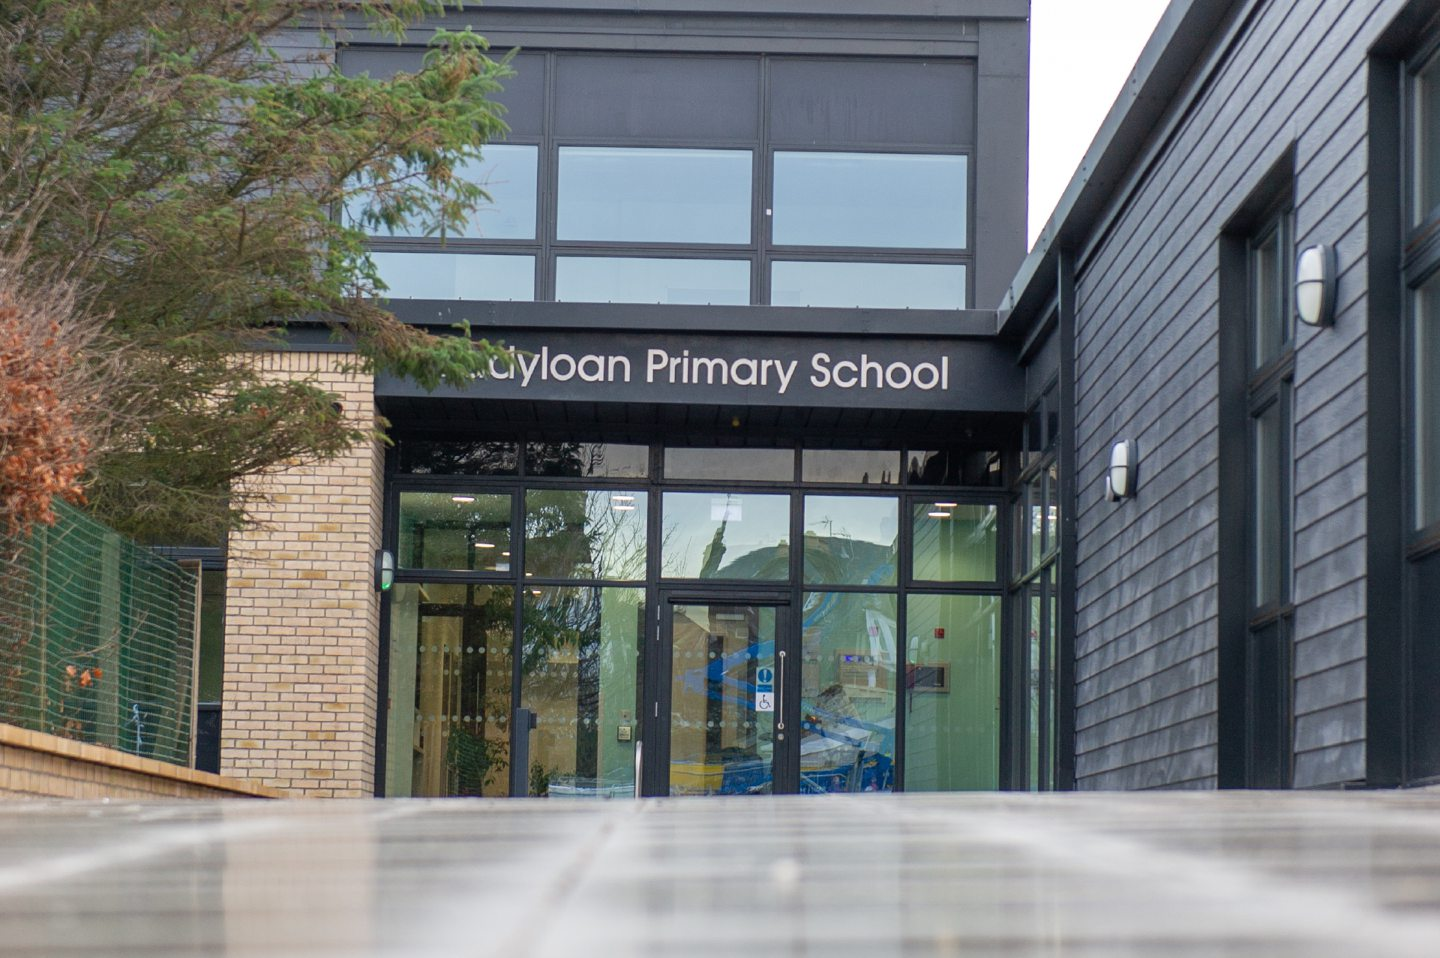 The new Ladyloan primary school in Arbroath,